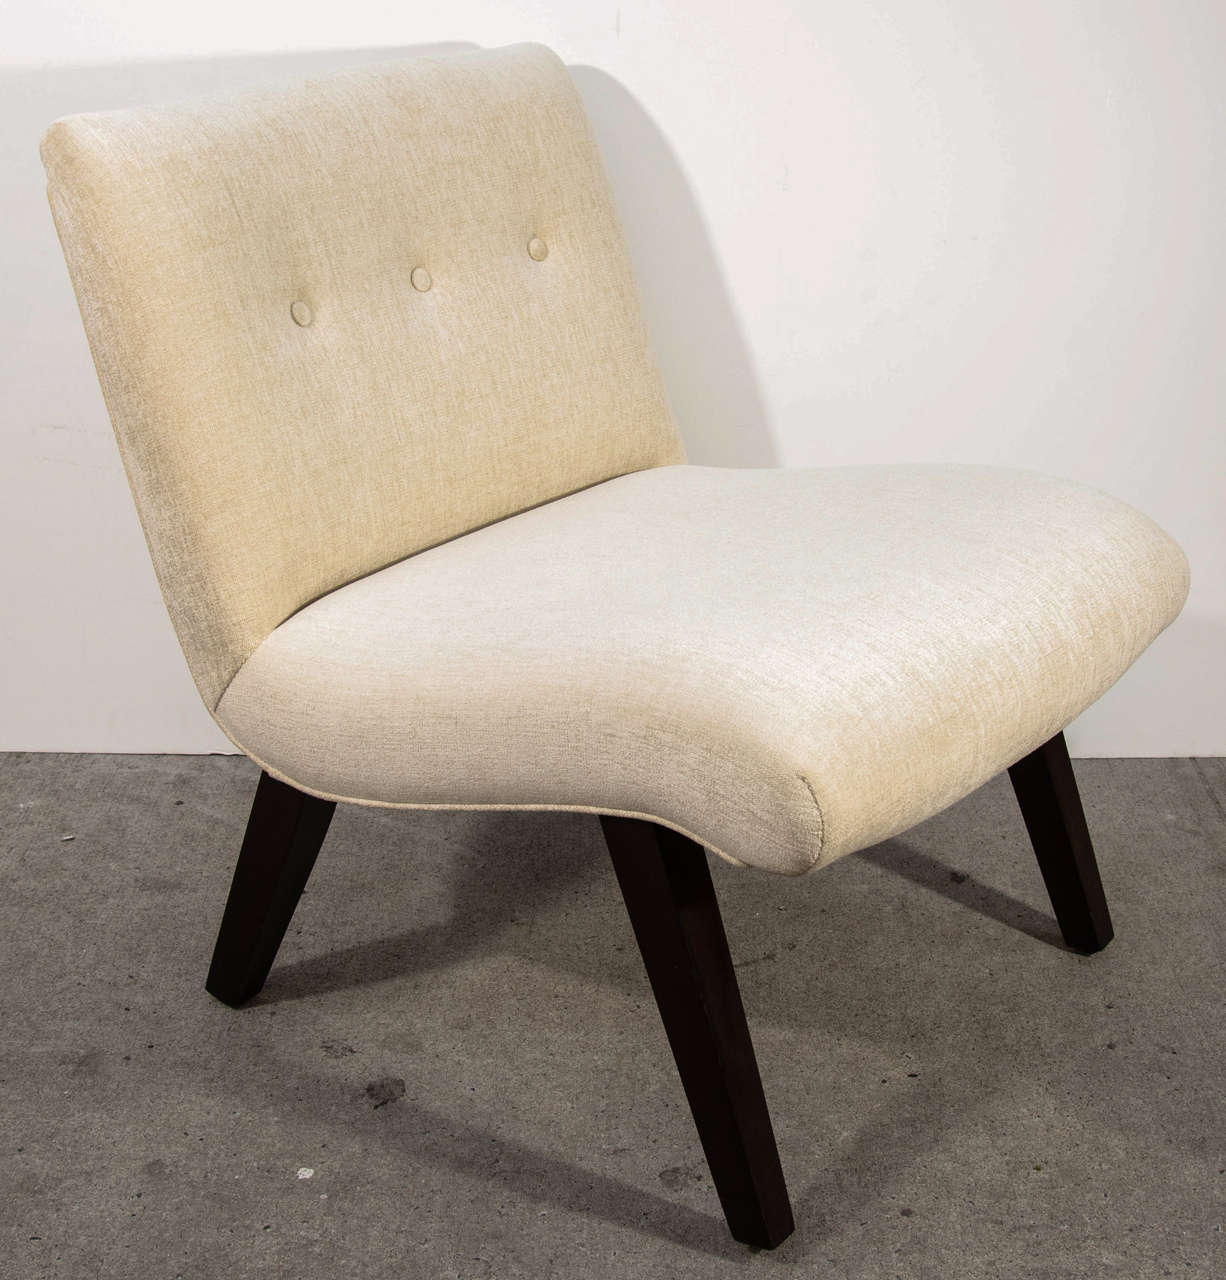 American Mid-Century Modern Slipper Chair in the Style of Jens Risom For Sale